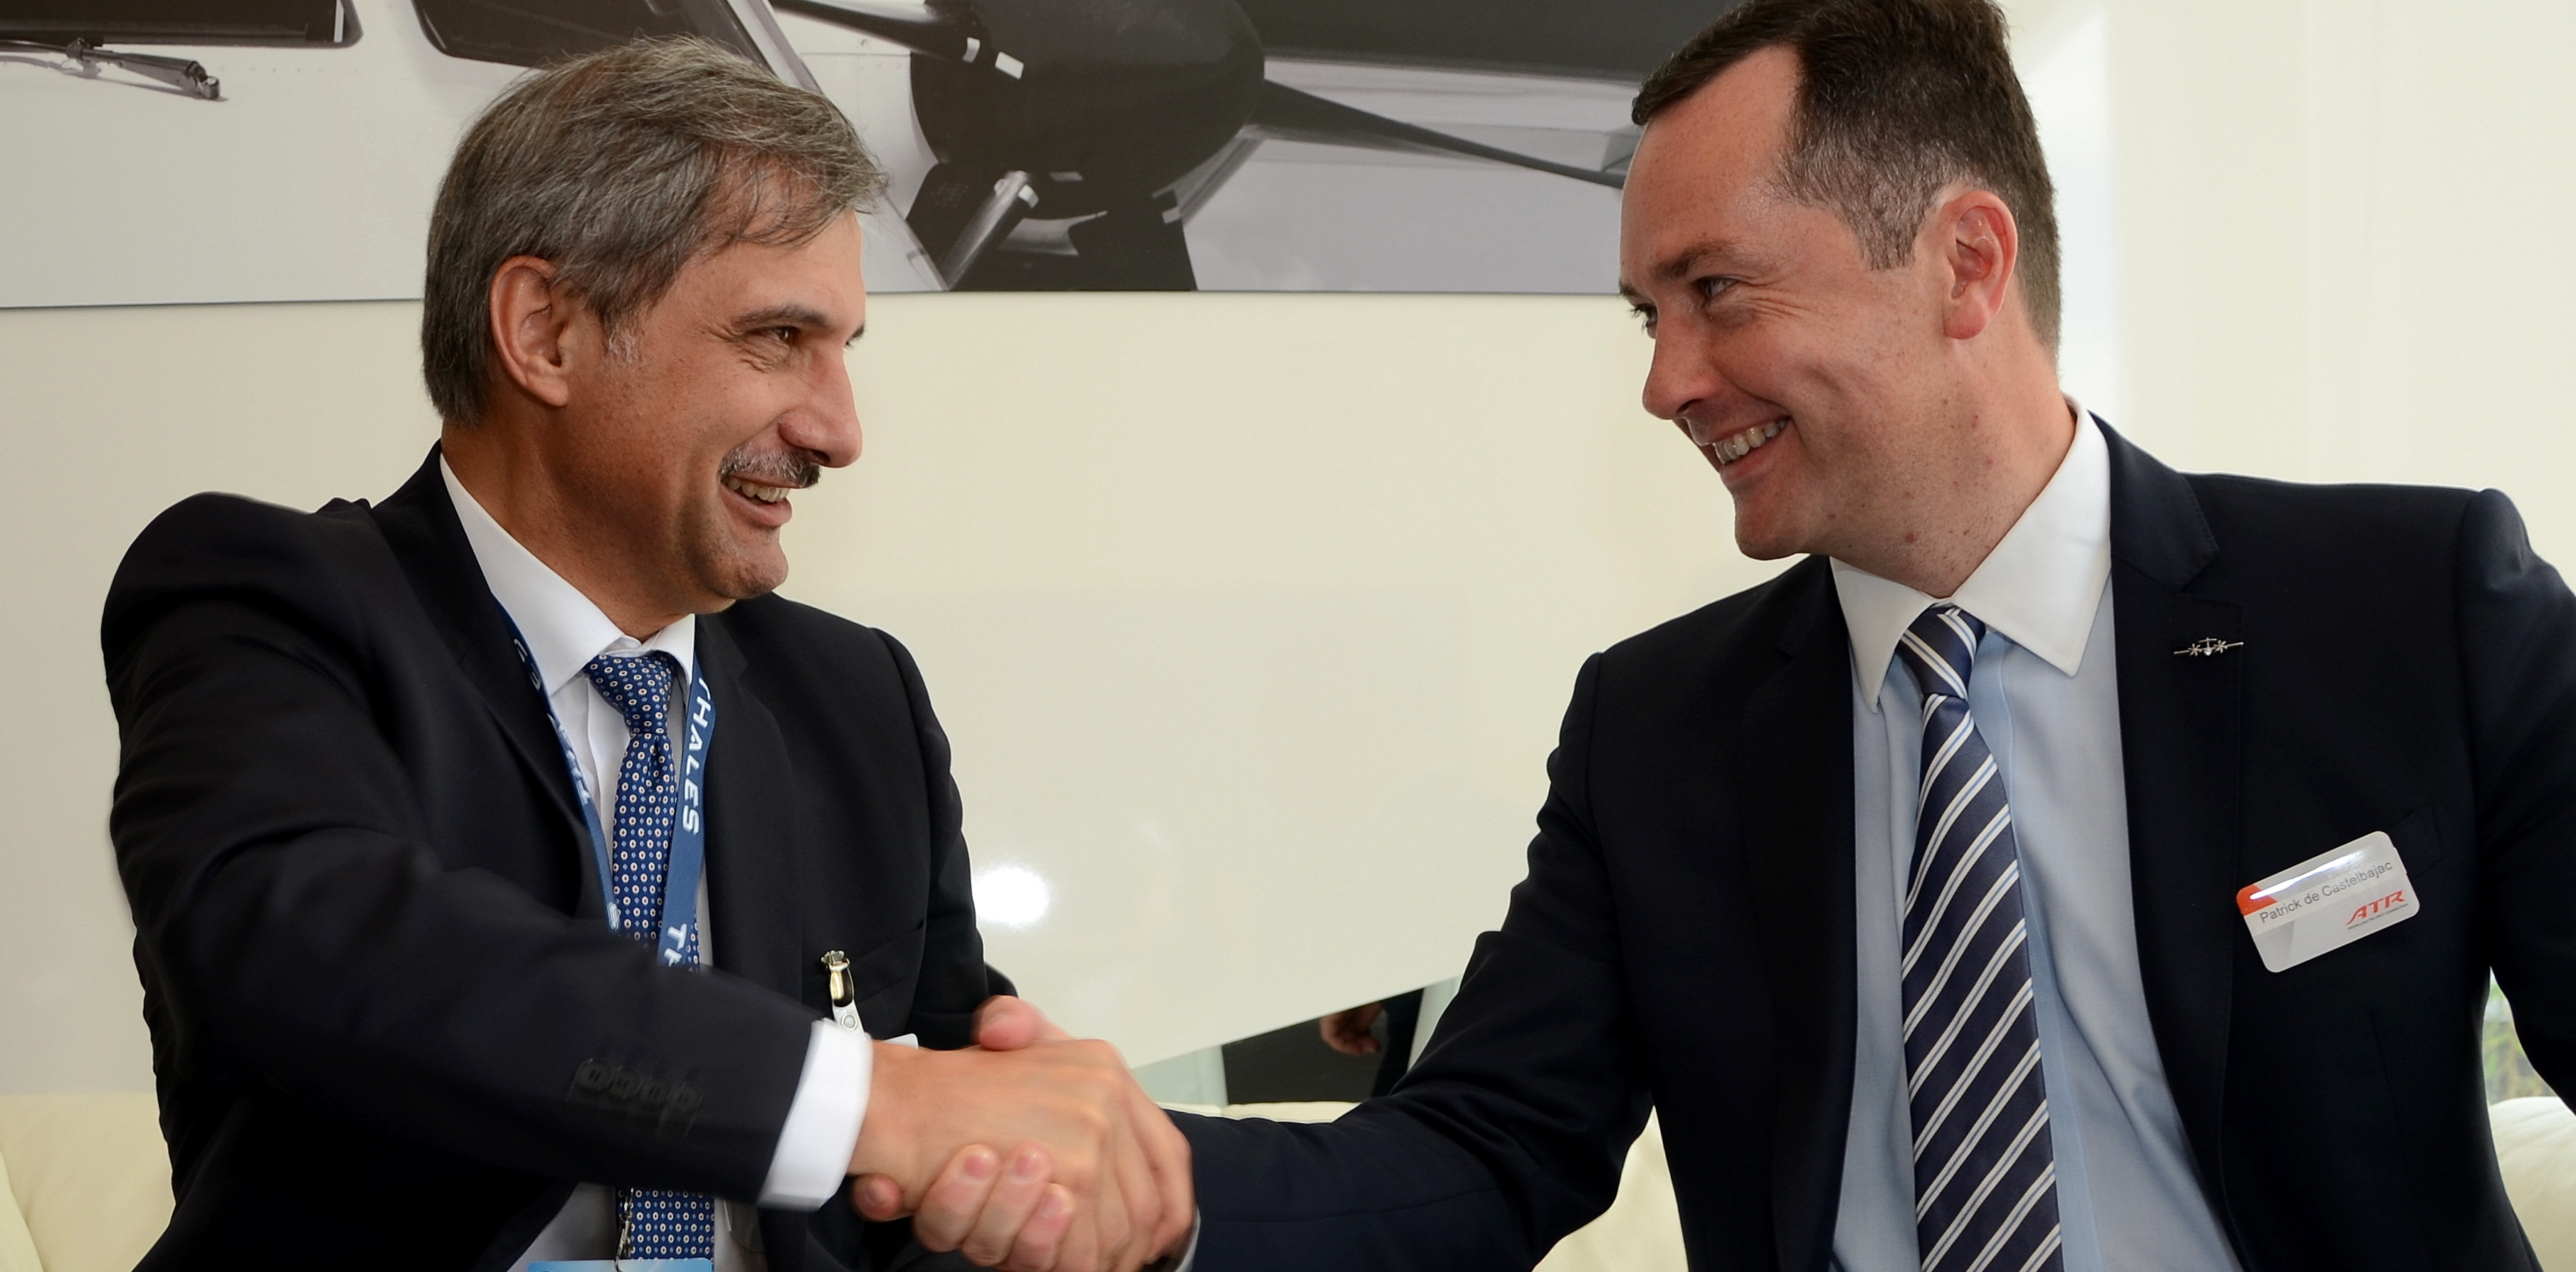 ATR-600: ATR selects Thales for the next steps